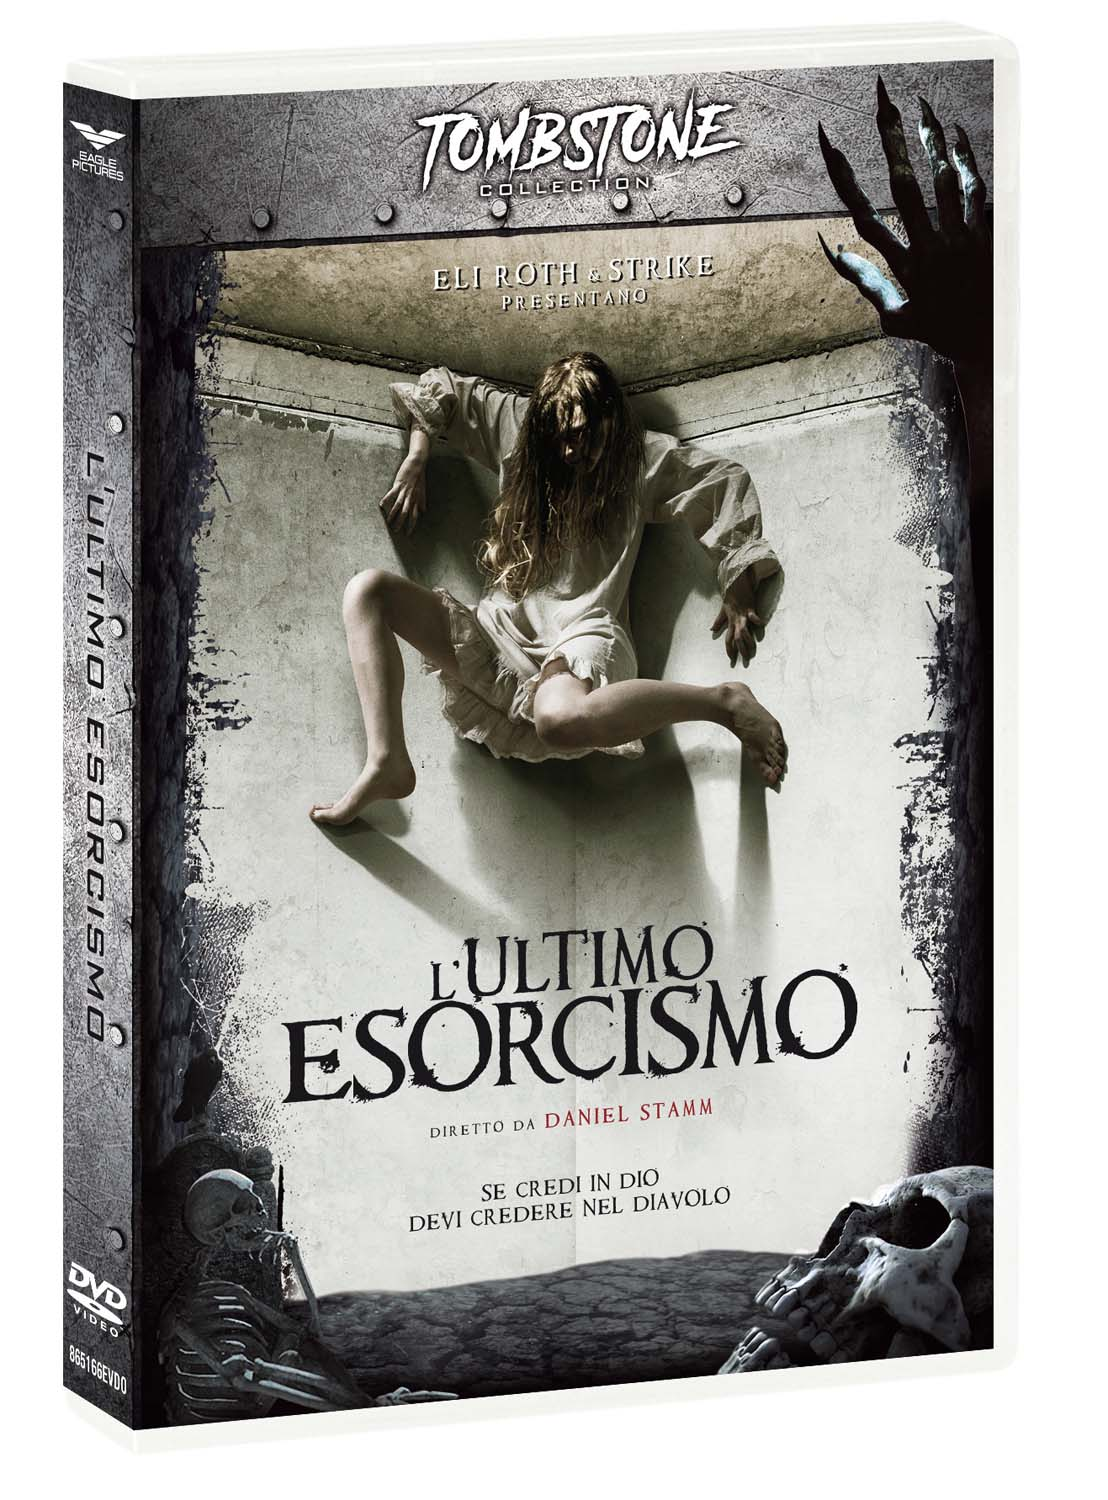 L'ULTIMO ESORCISMO (TOMBSTONE) (DVD)